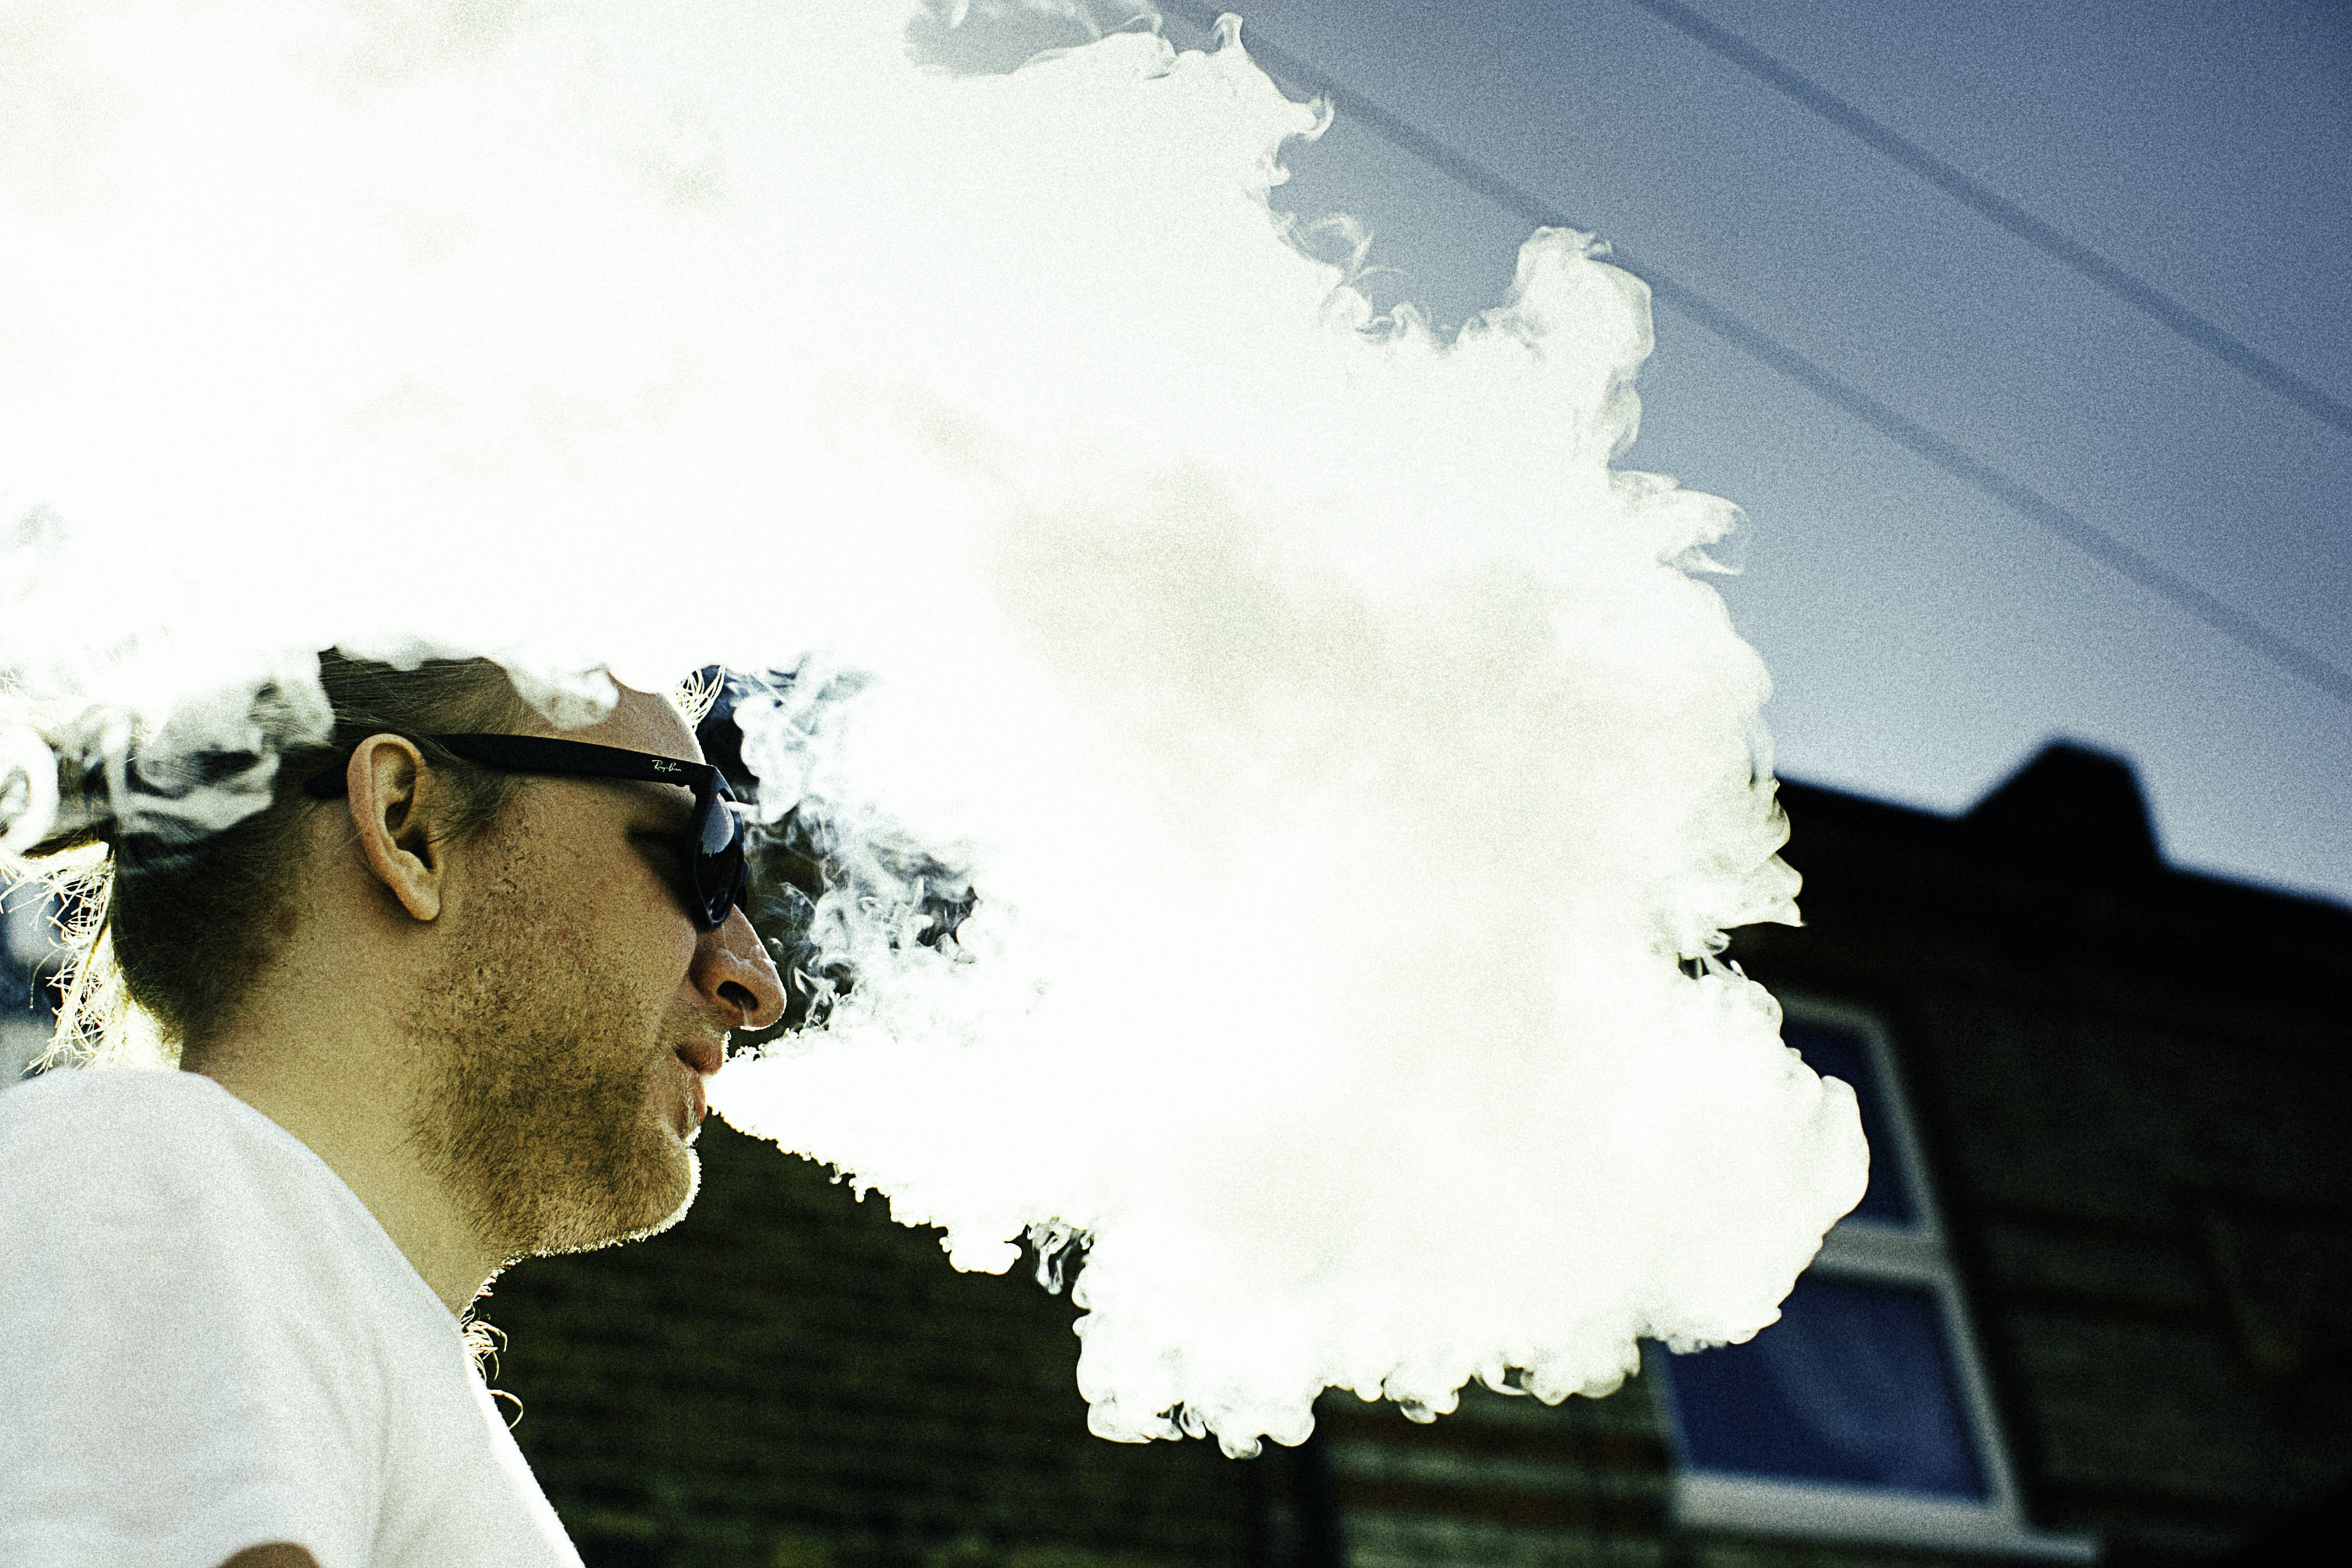 man blowing thick white smoke on air overlooking black building wall at daytime